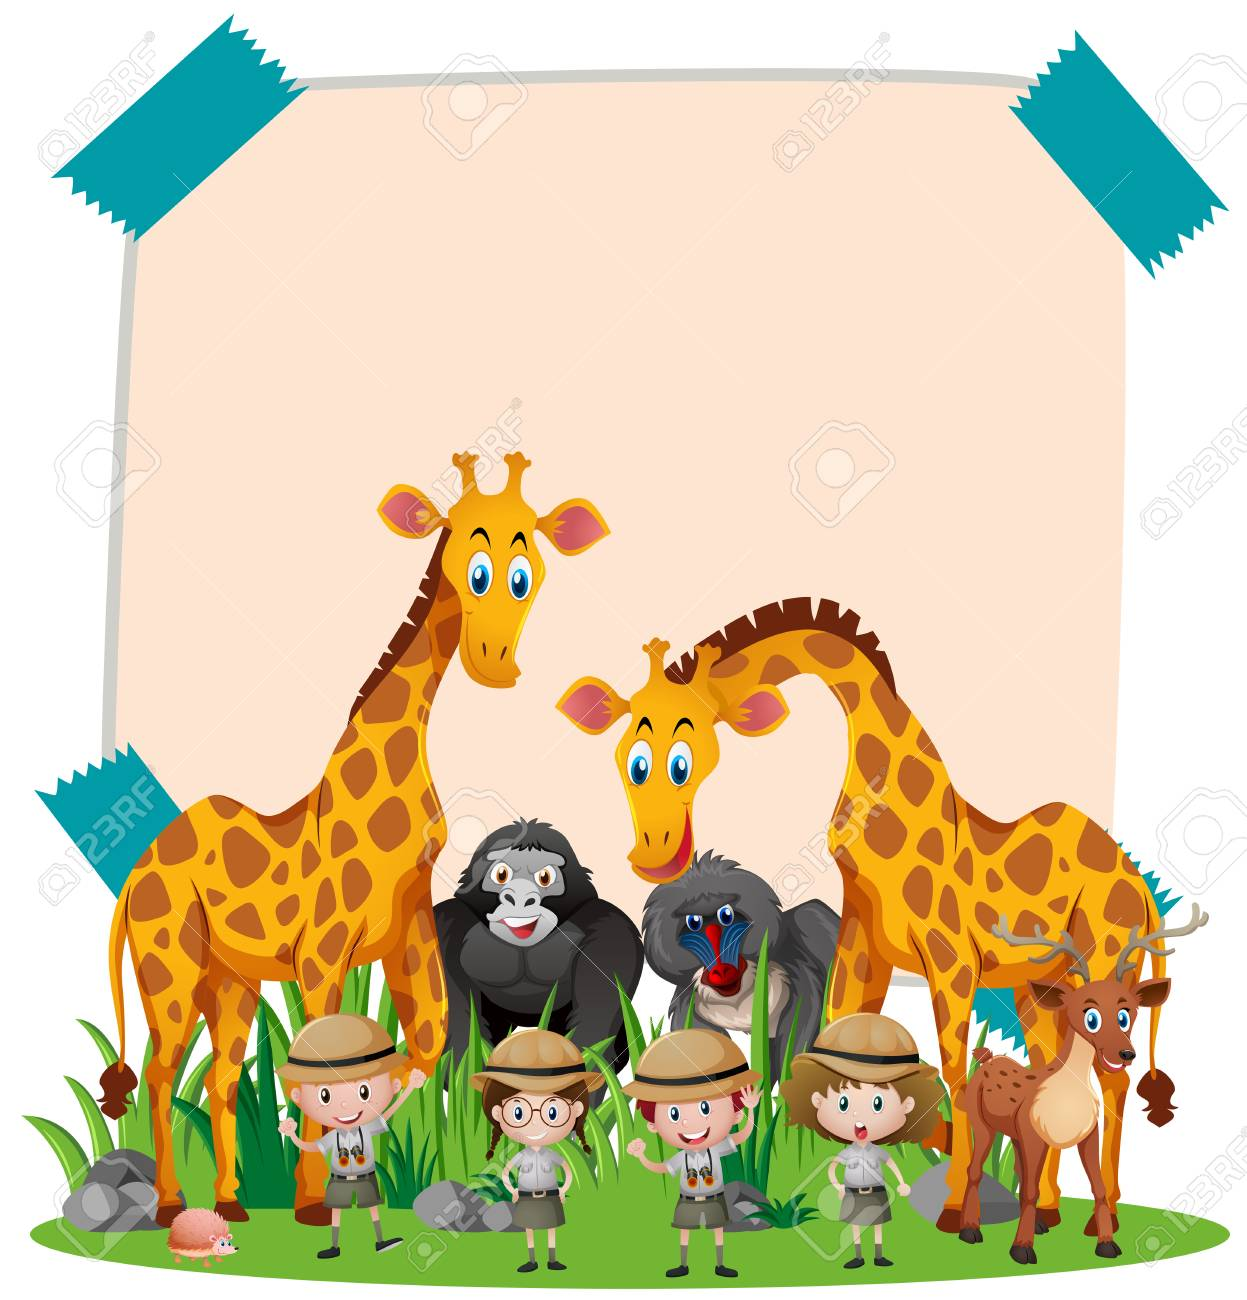 Paper template with wild animals and kids illustration